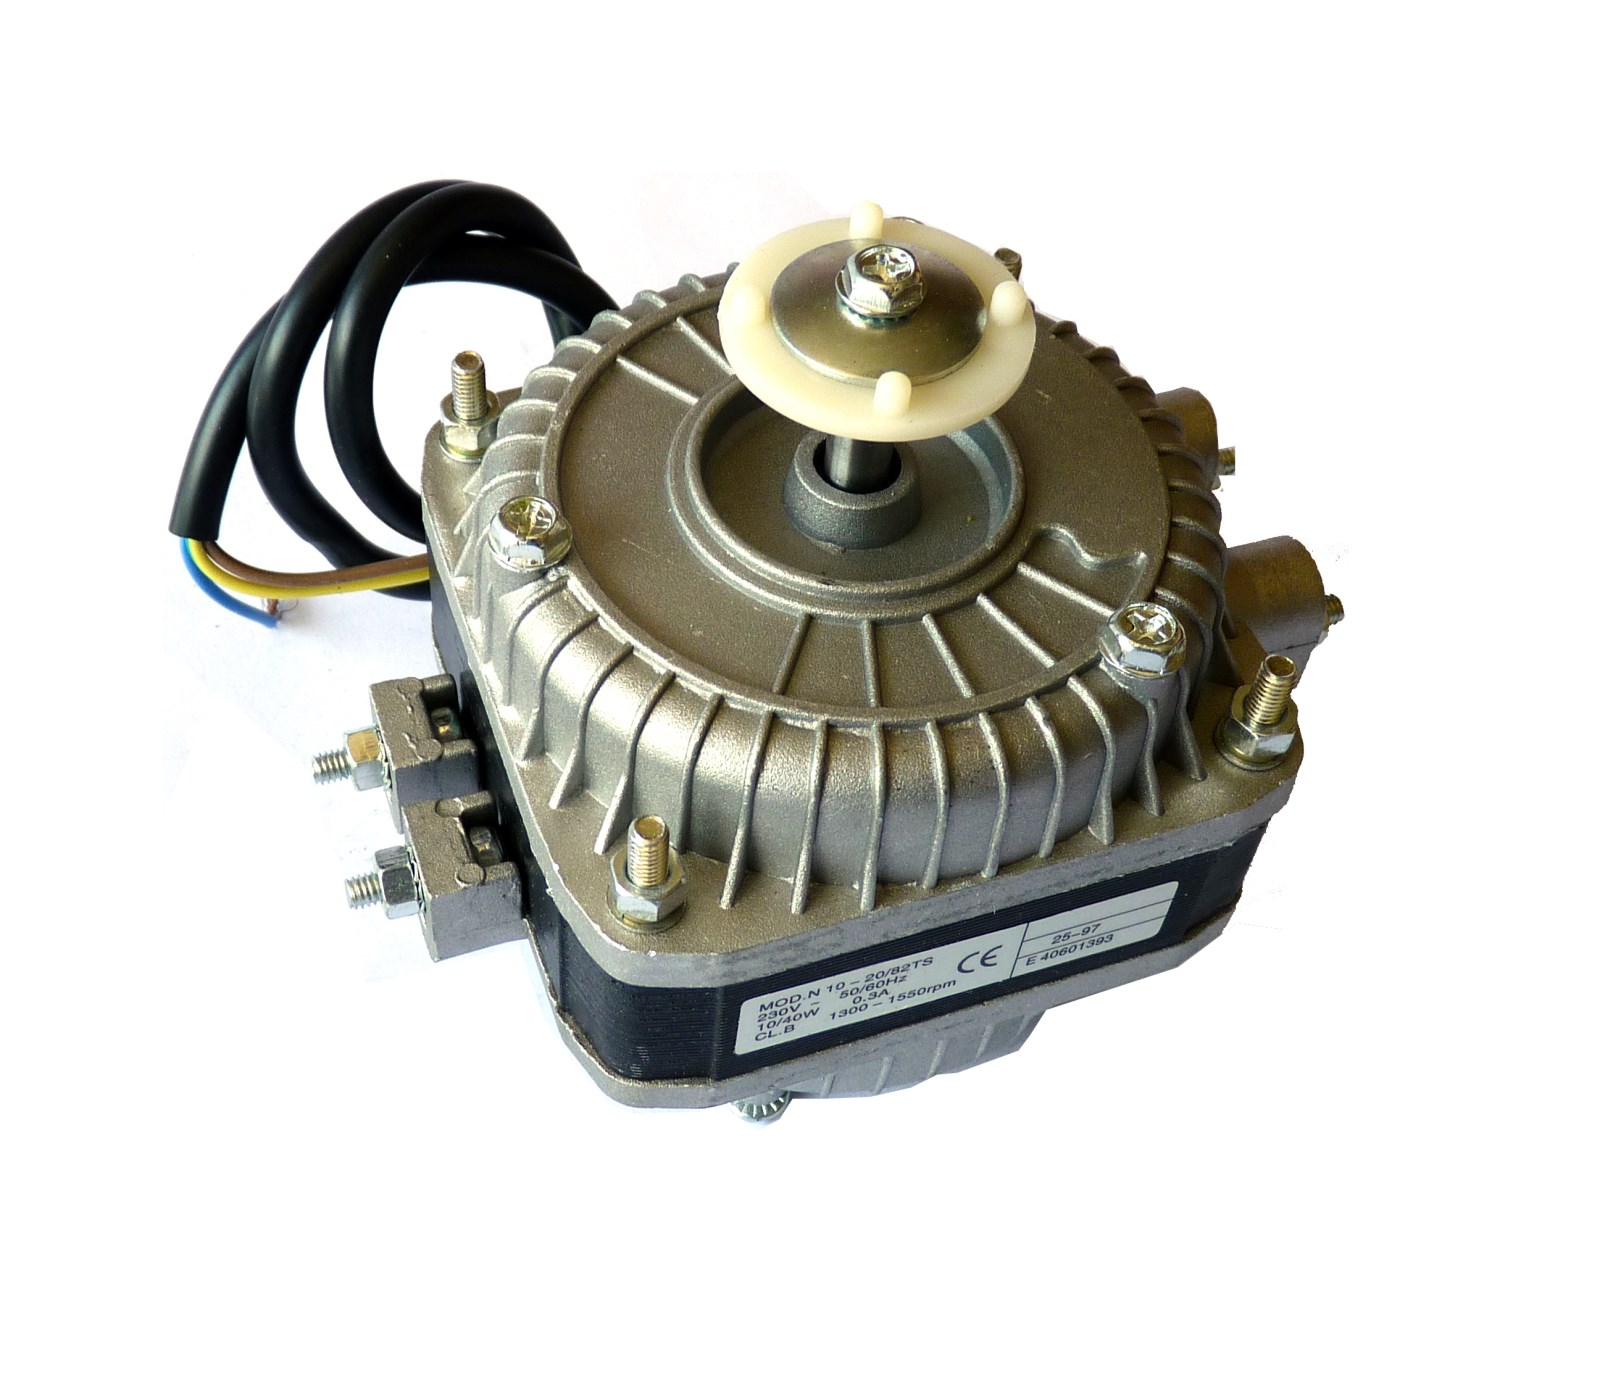 Refrigerator evaporator fan replacement 28 images for Ge refrigerator evaporator fan motor replacement